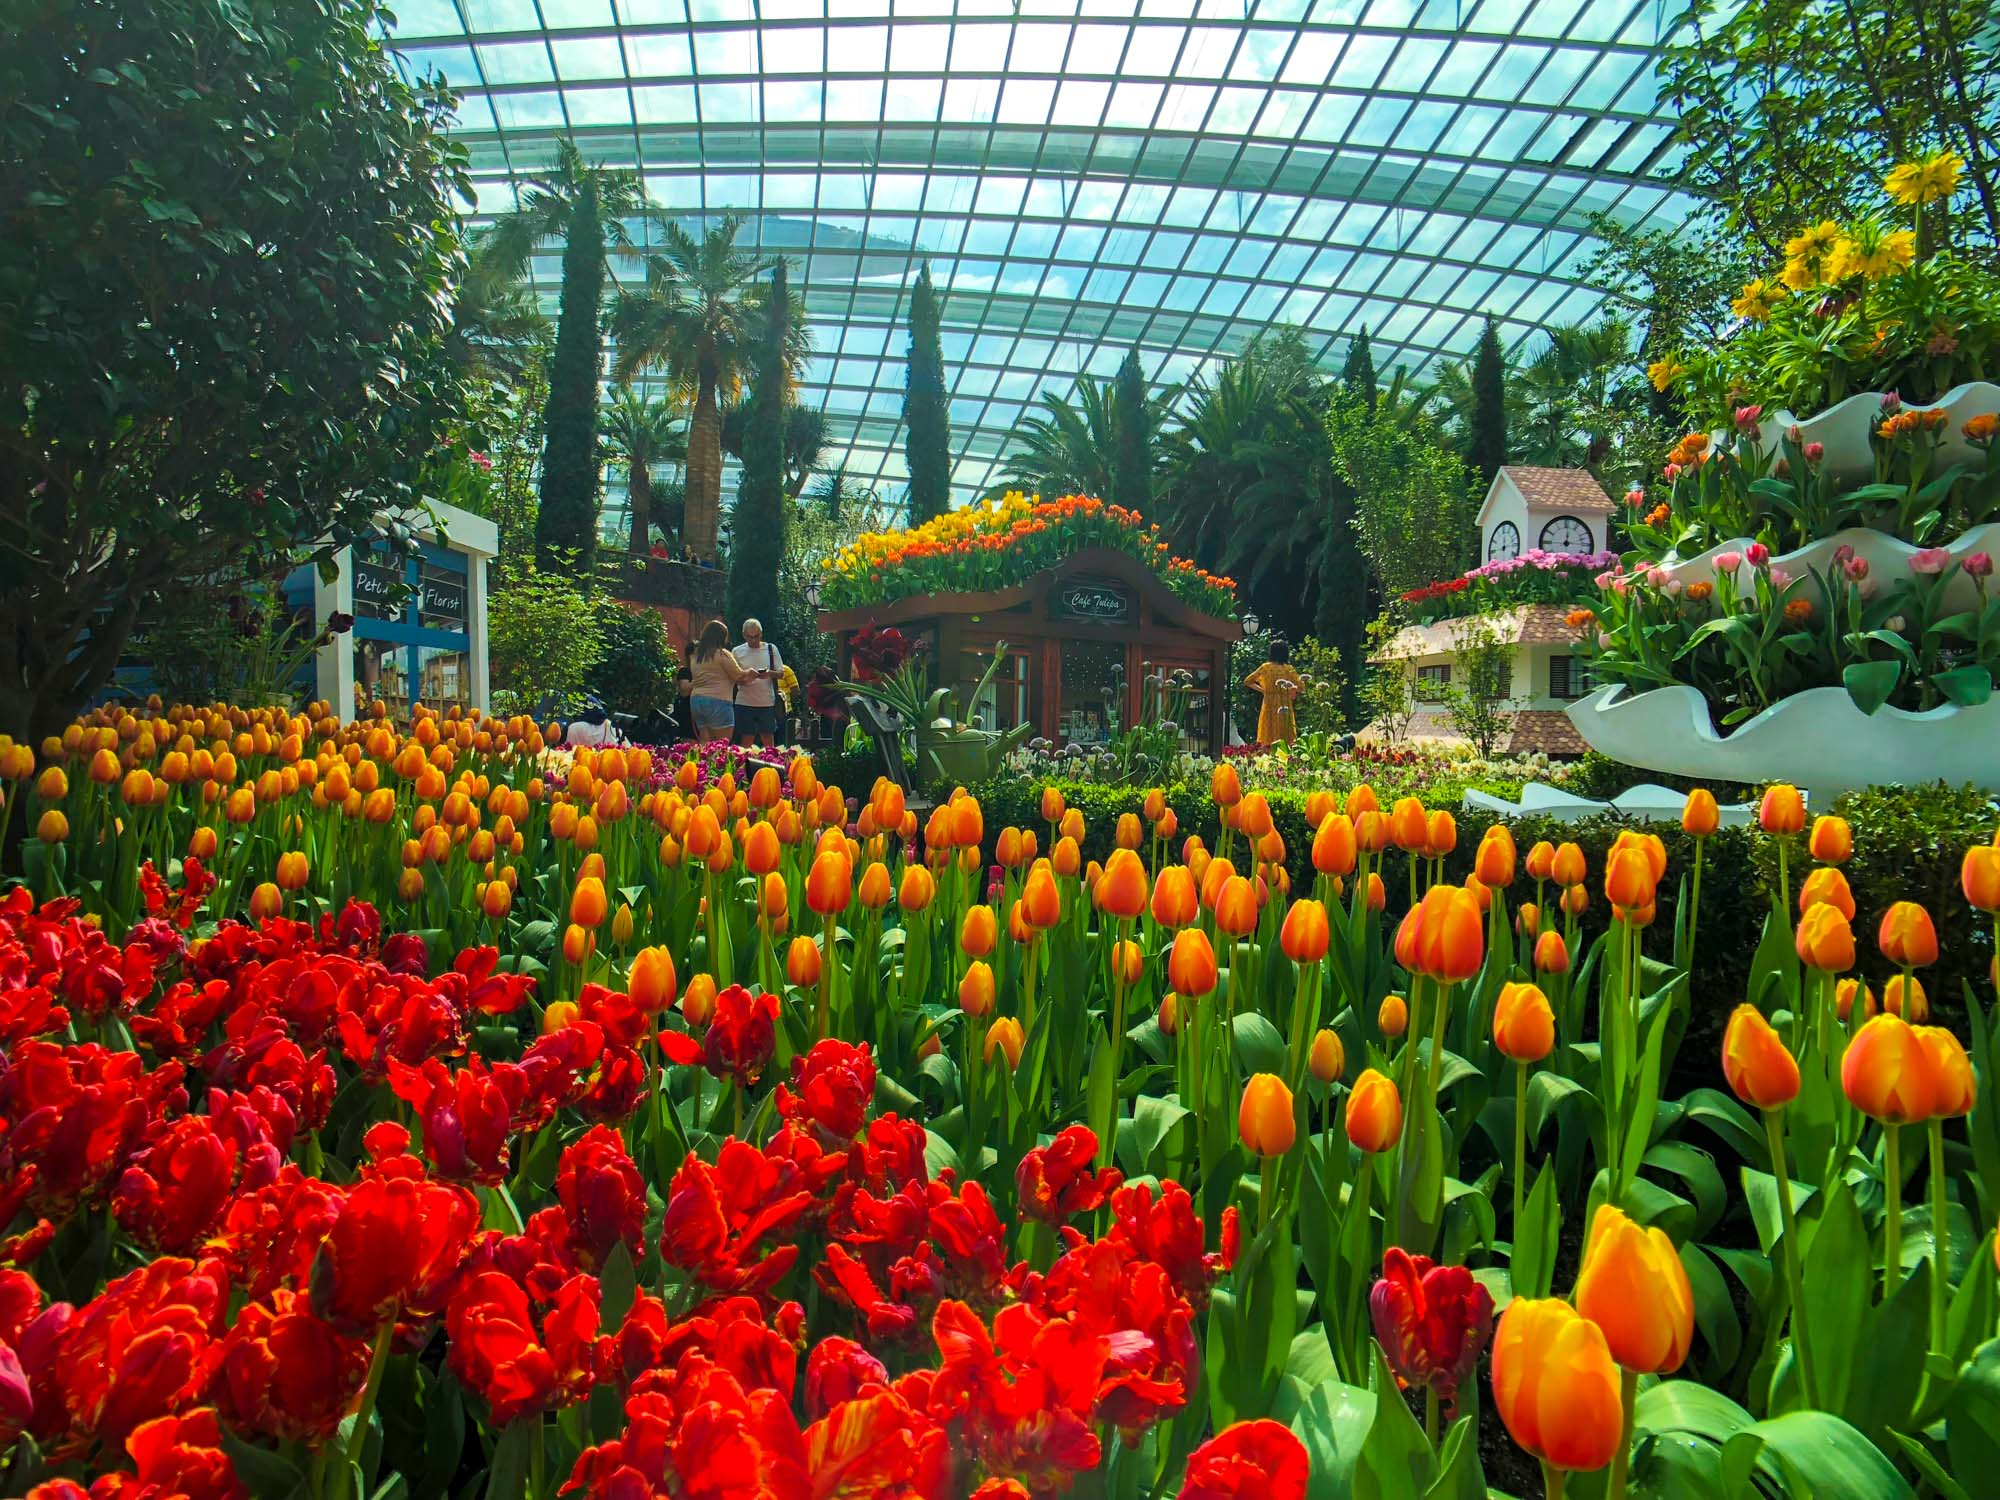 Tulipmania at Gardens by the Bay